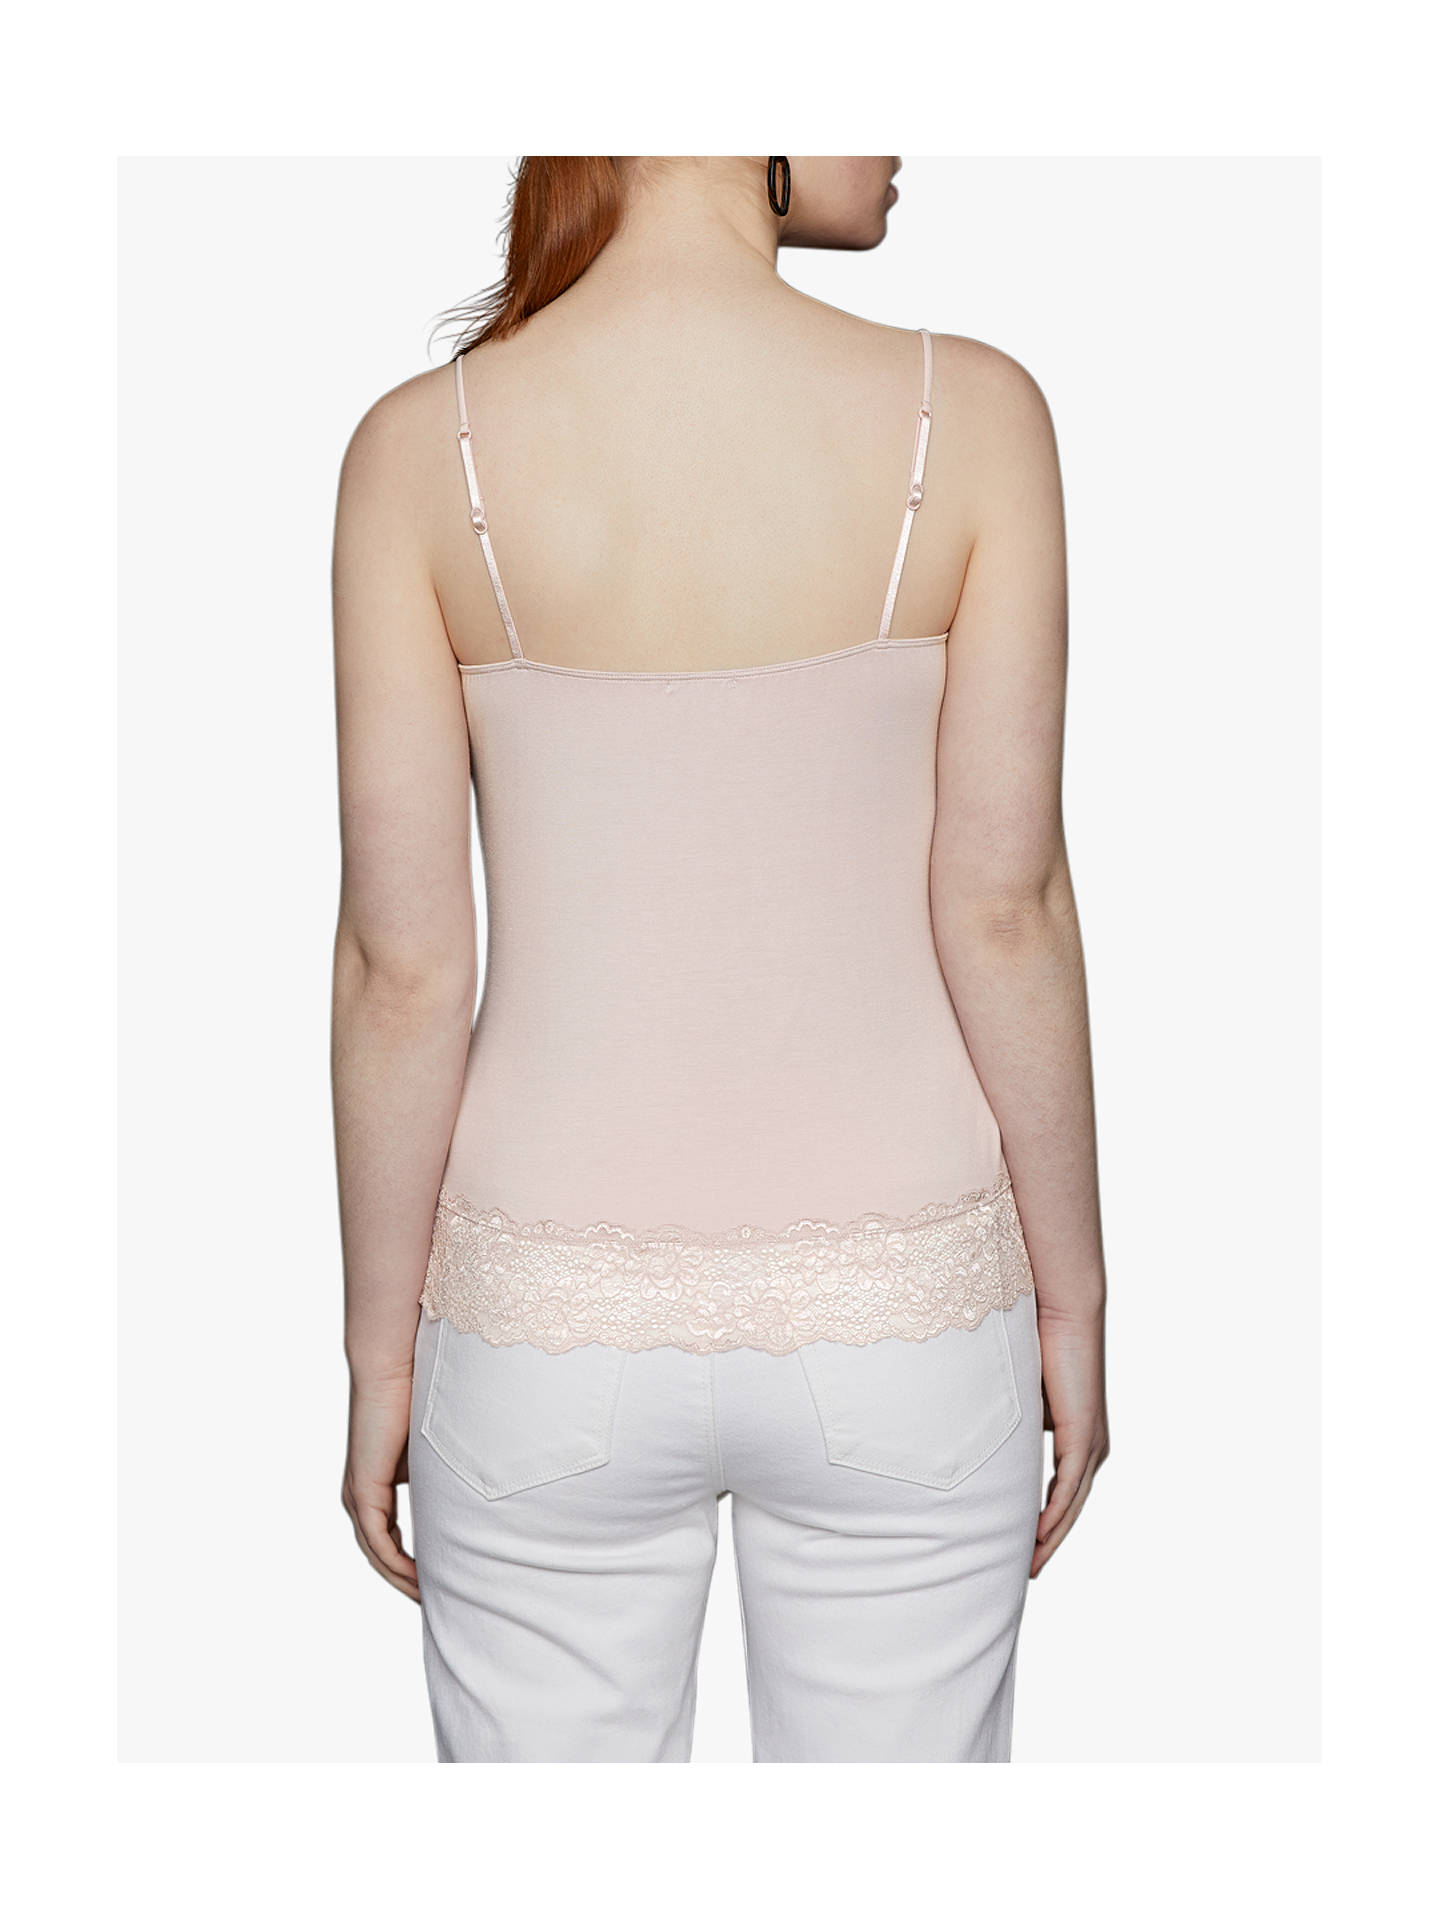 BuyJigsaw Modal Lace Trim Vest, Soft Rose, XS Online at johnlewis.com